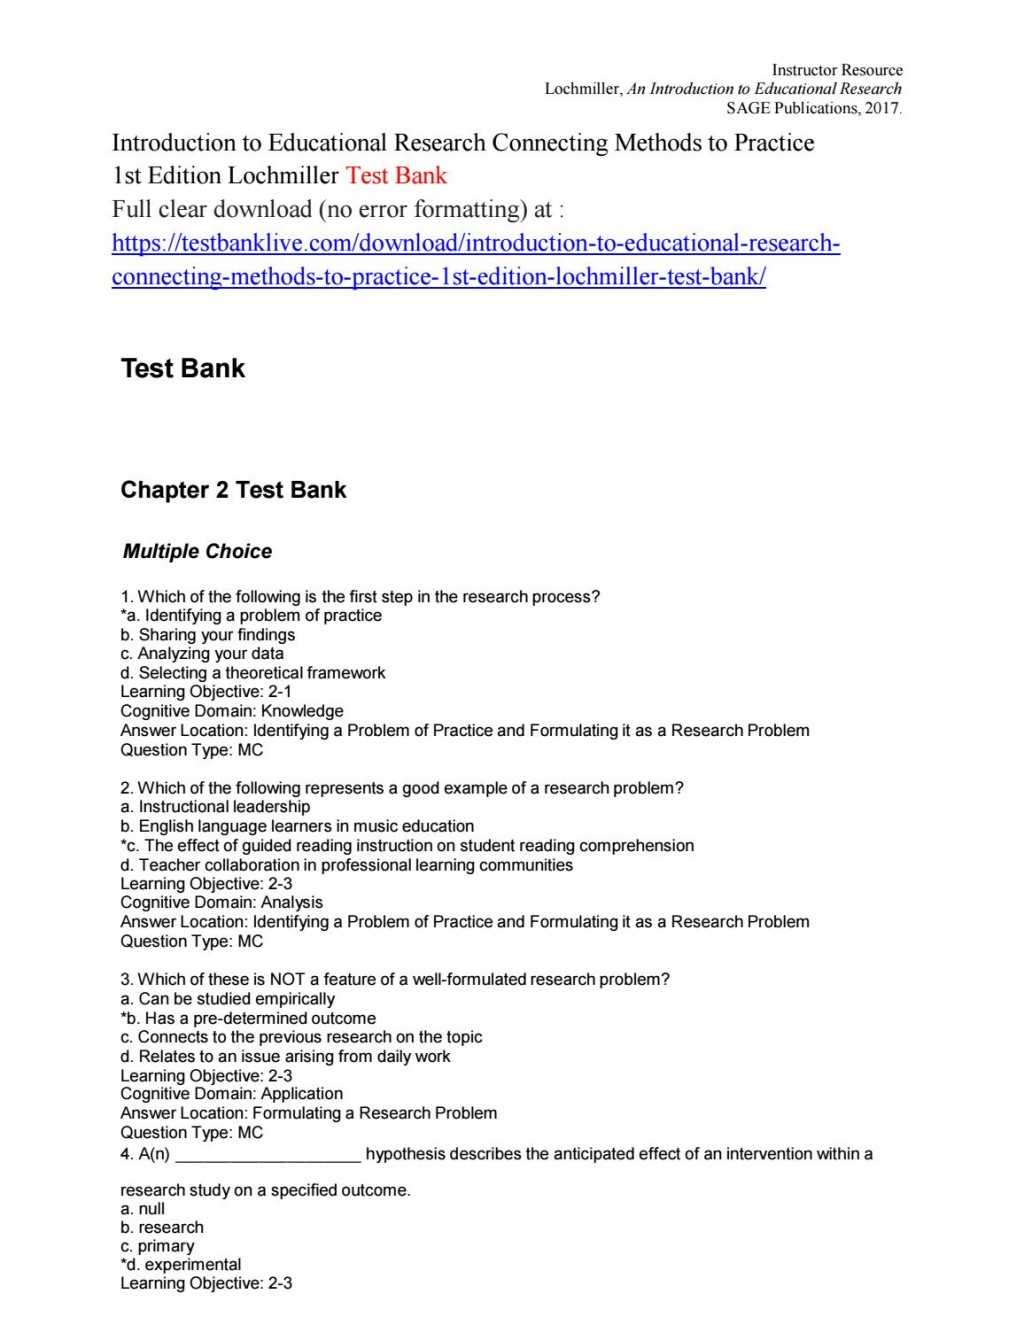 003 Page 1 Research Paper Education Beautiful Introduction Large